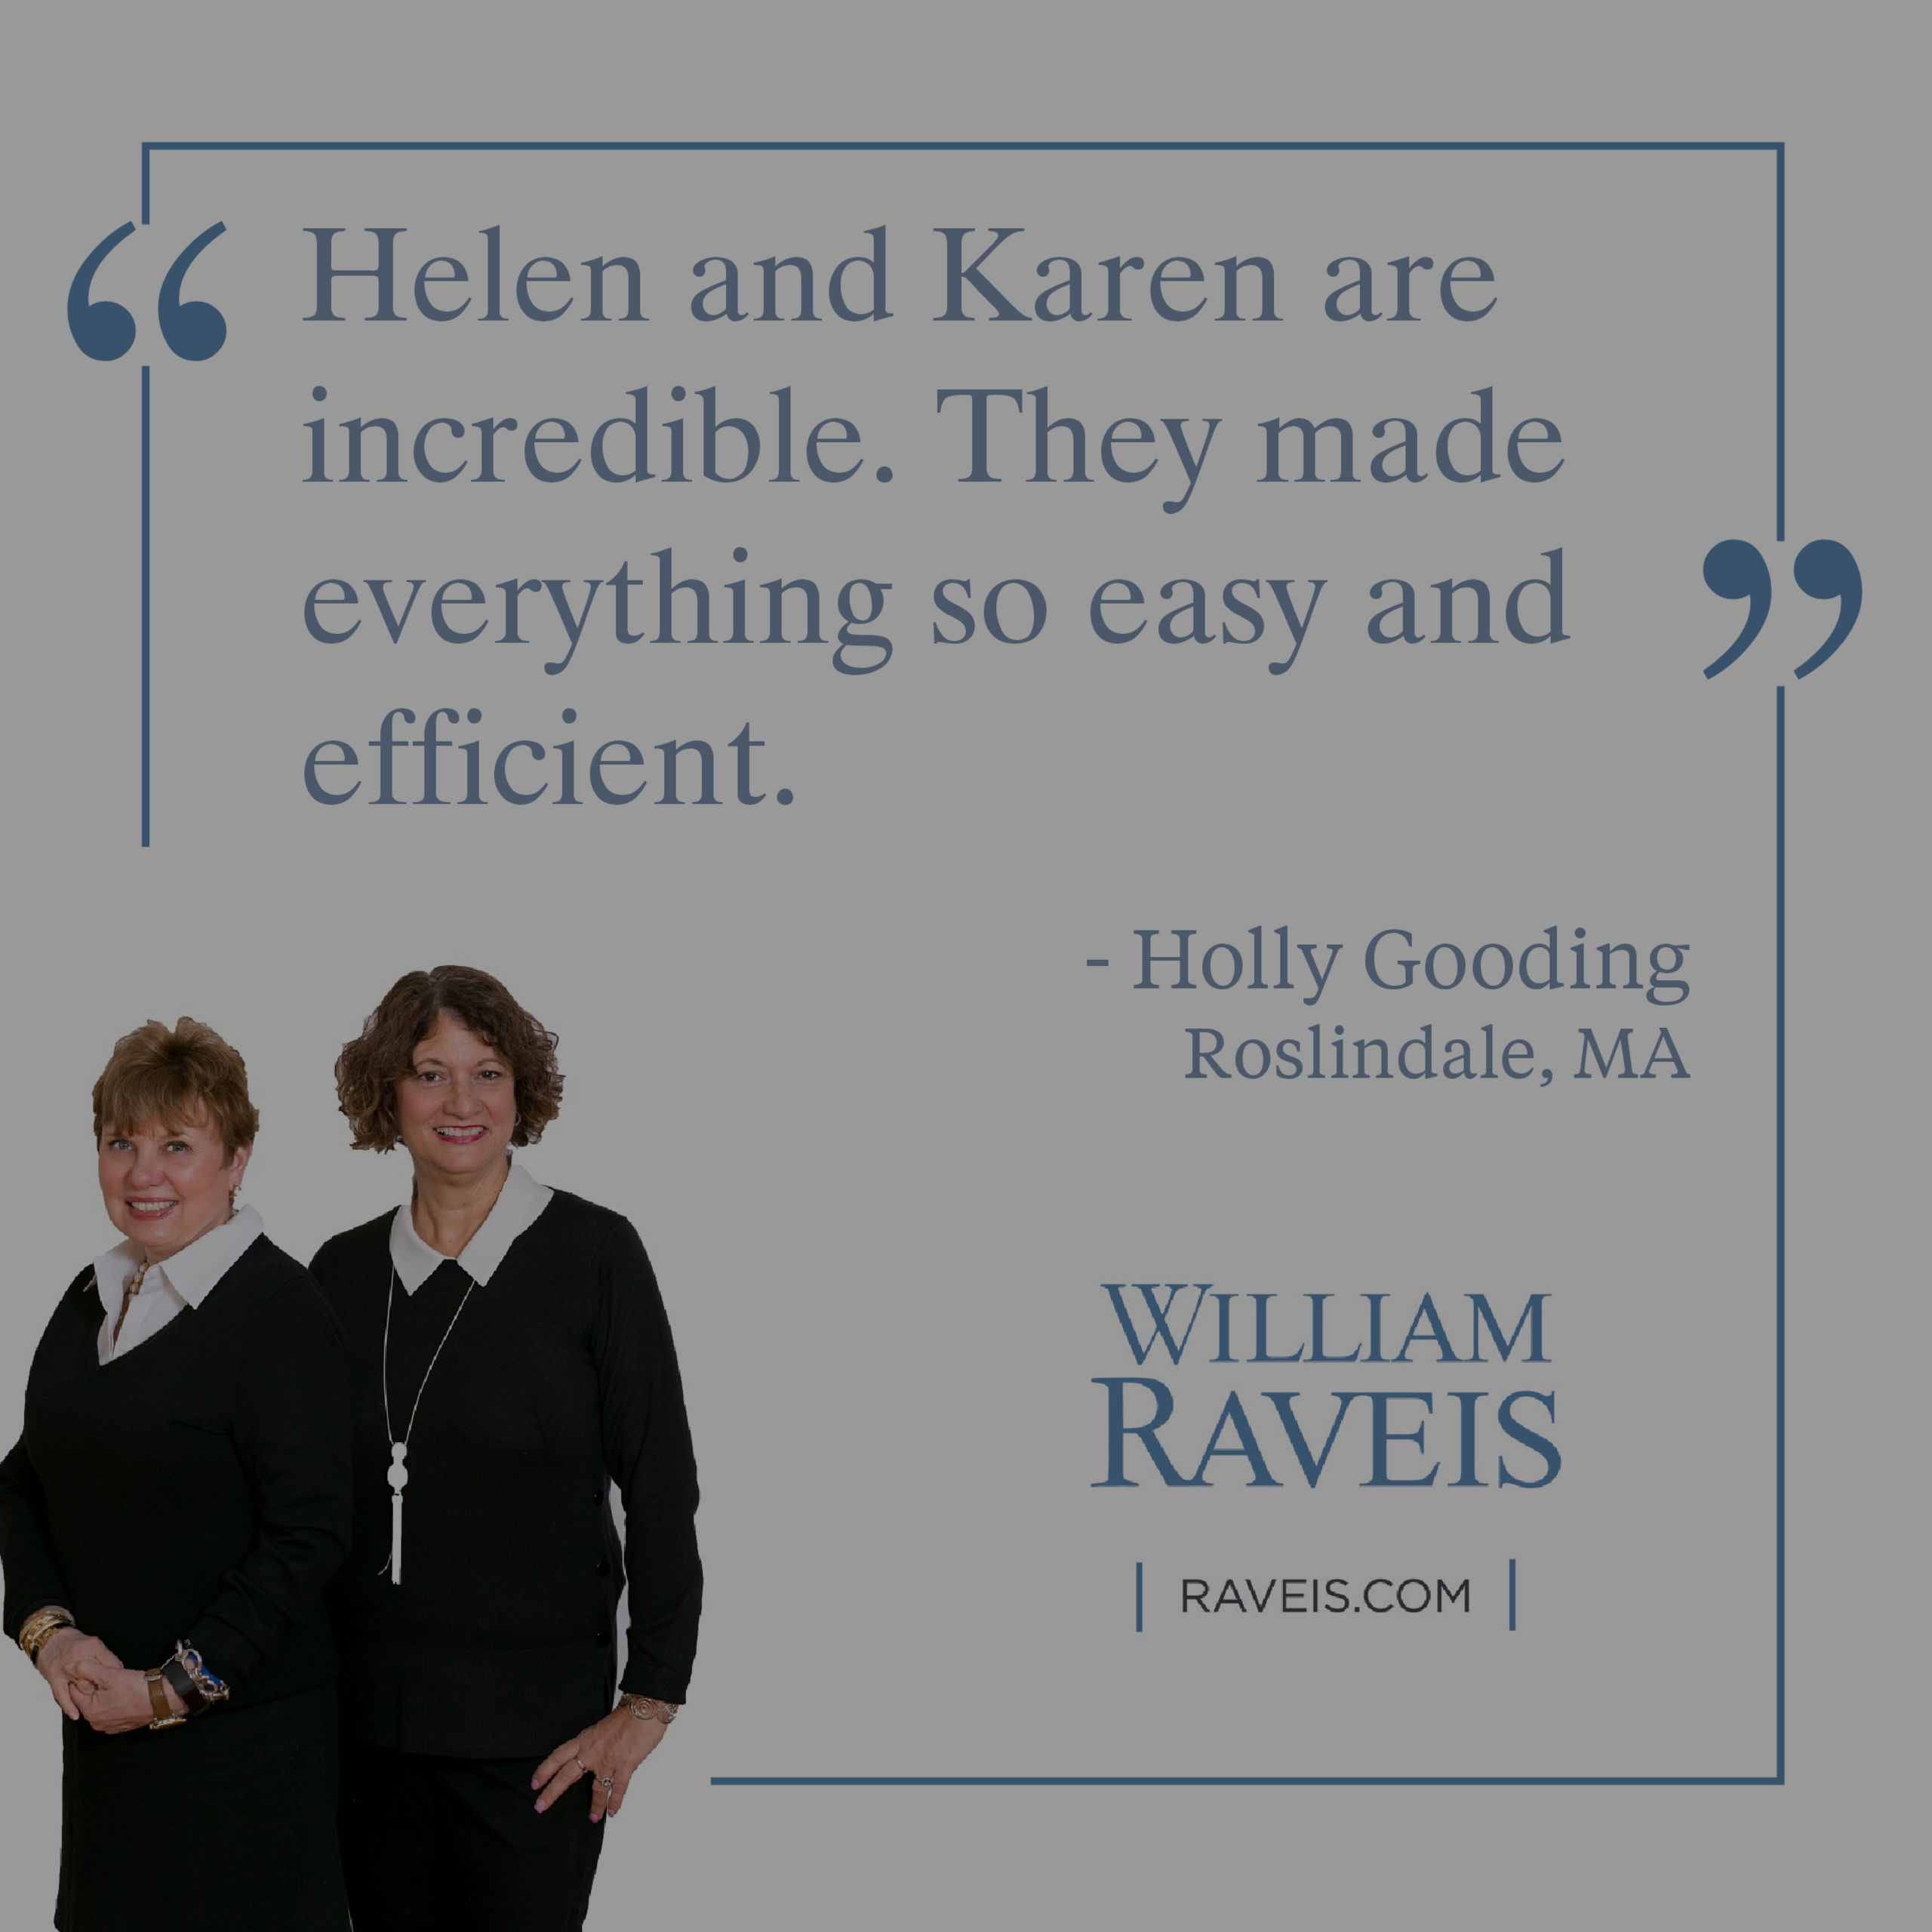 Client Testimonial from Holly Gooding